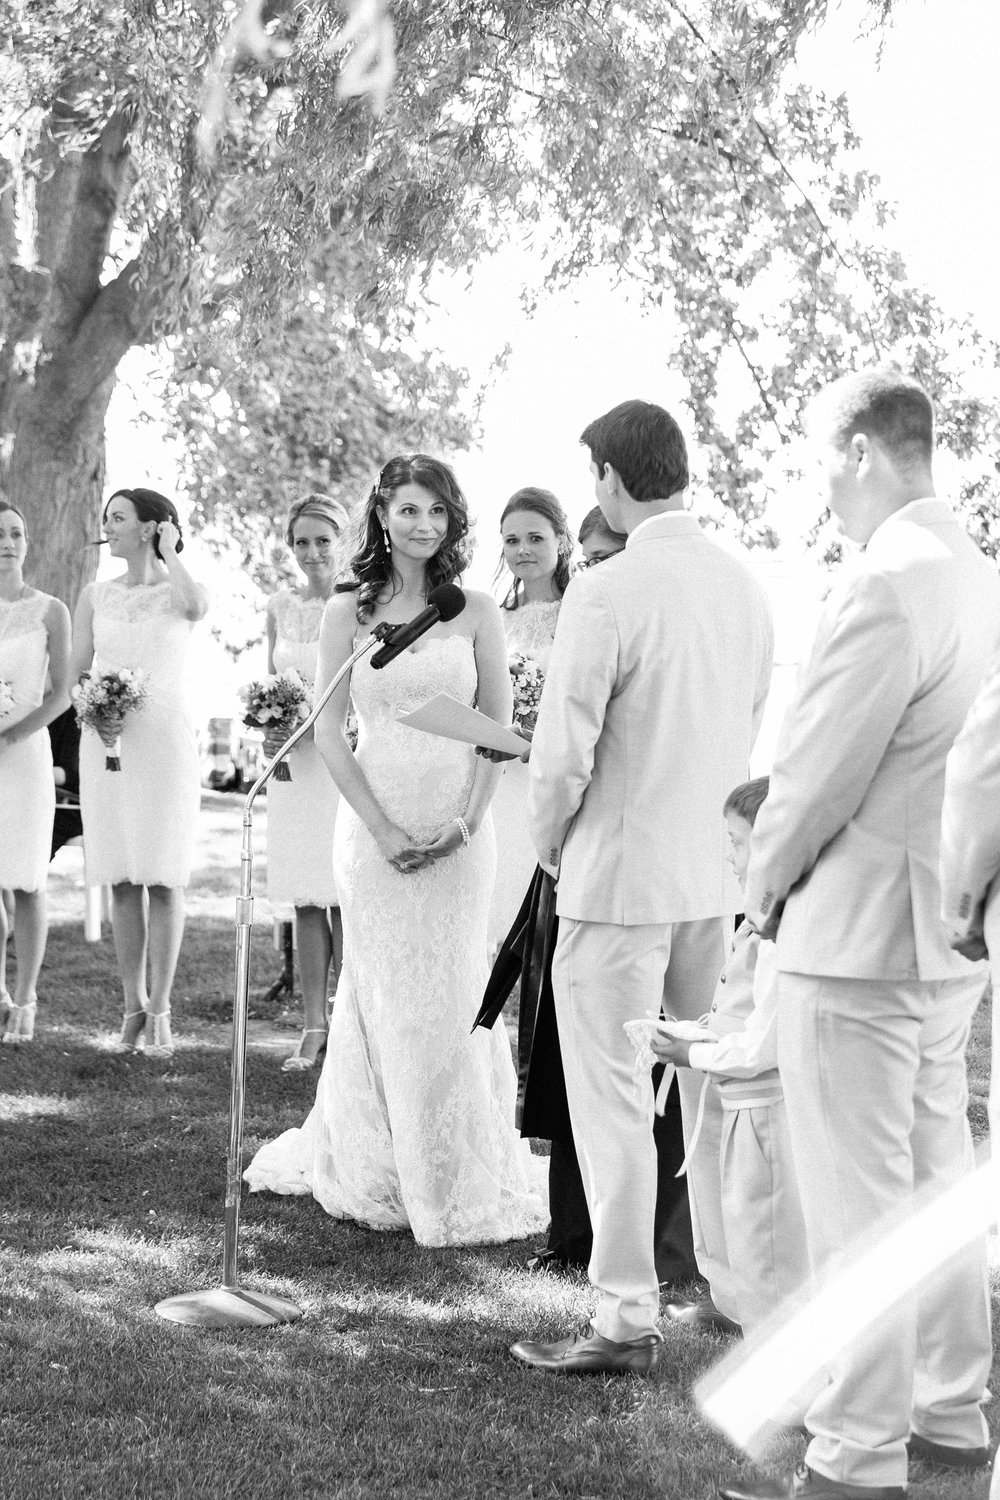 Groom saying vows to bride at outdoor summer wedding in Toronto